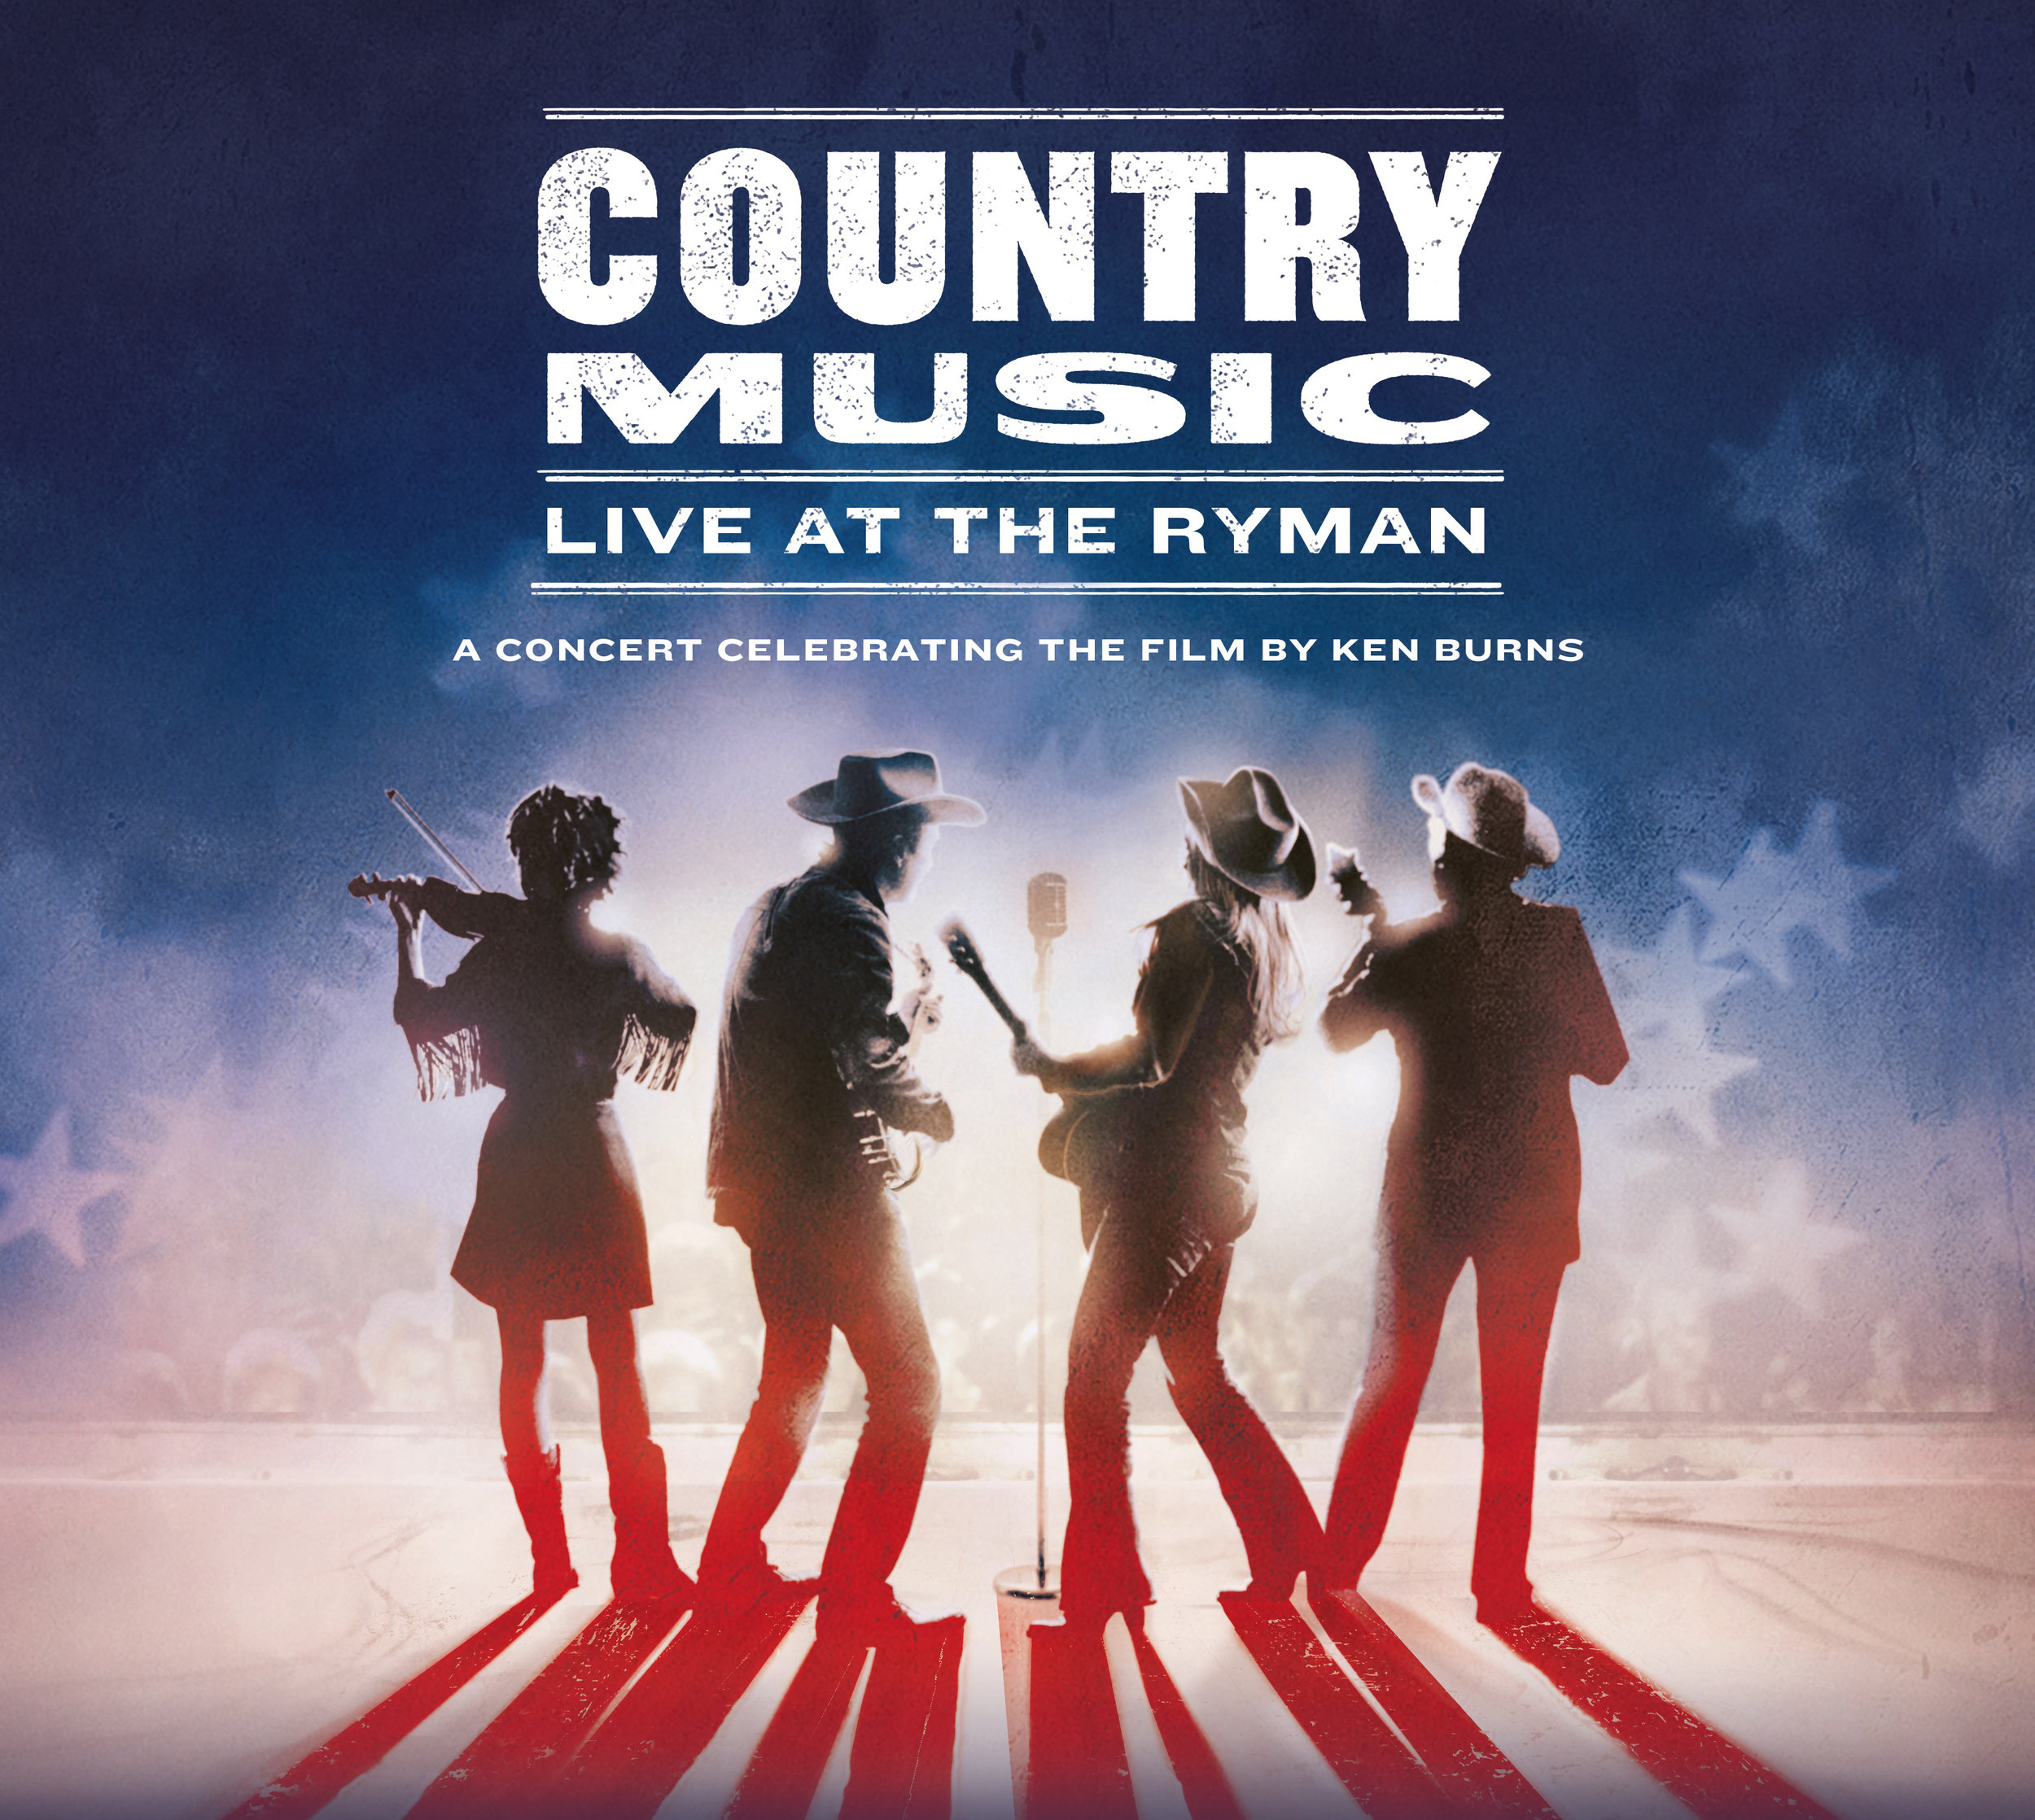 KenBurns_Country Music Live at the Ryman_Square.jpg